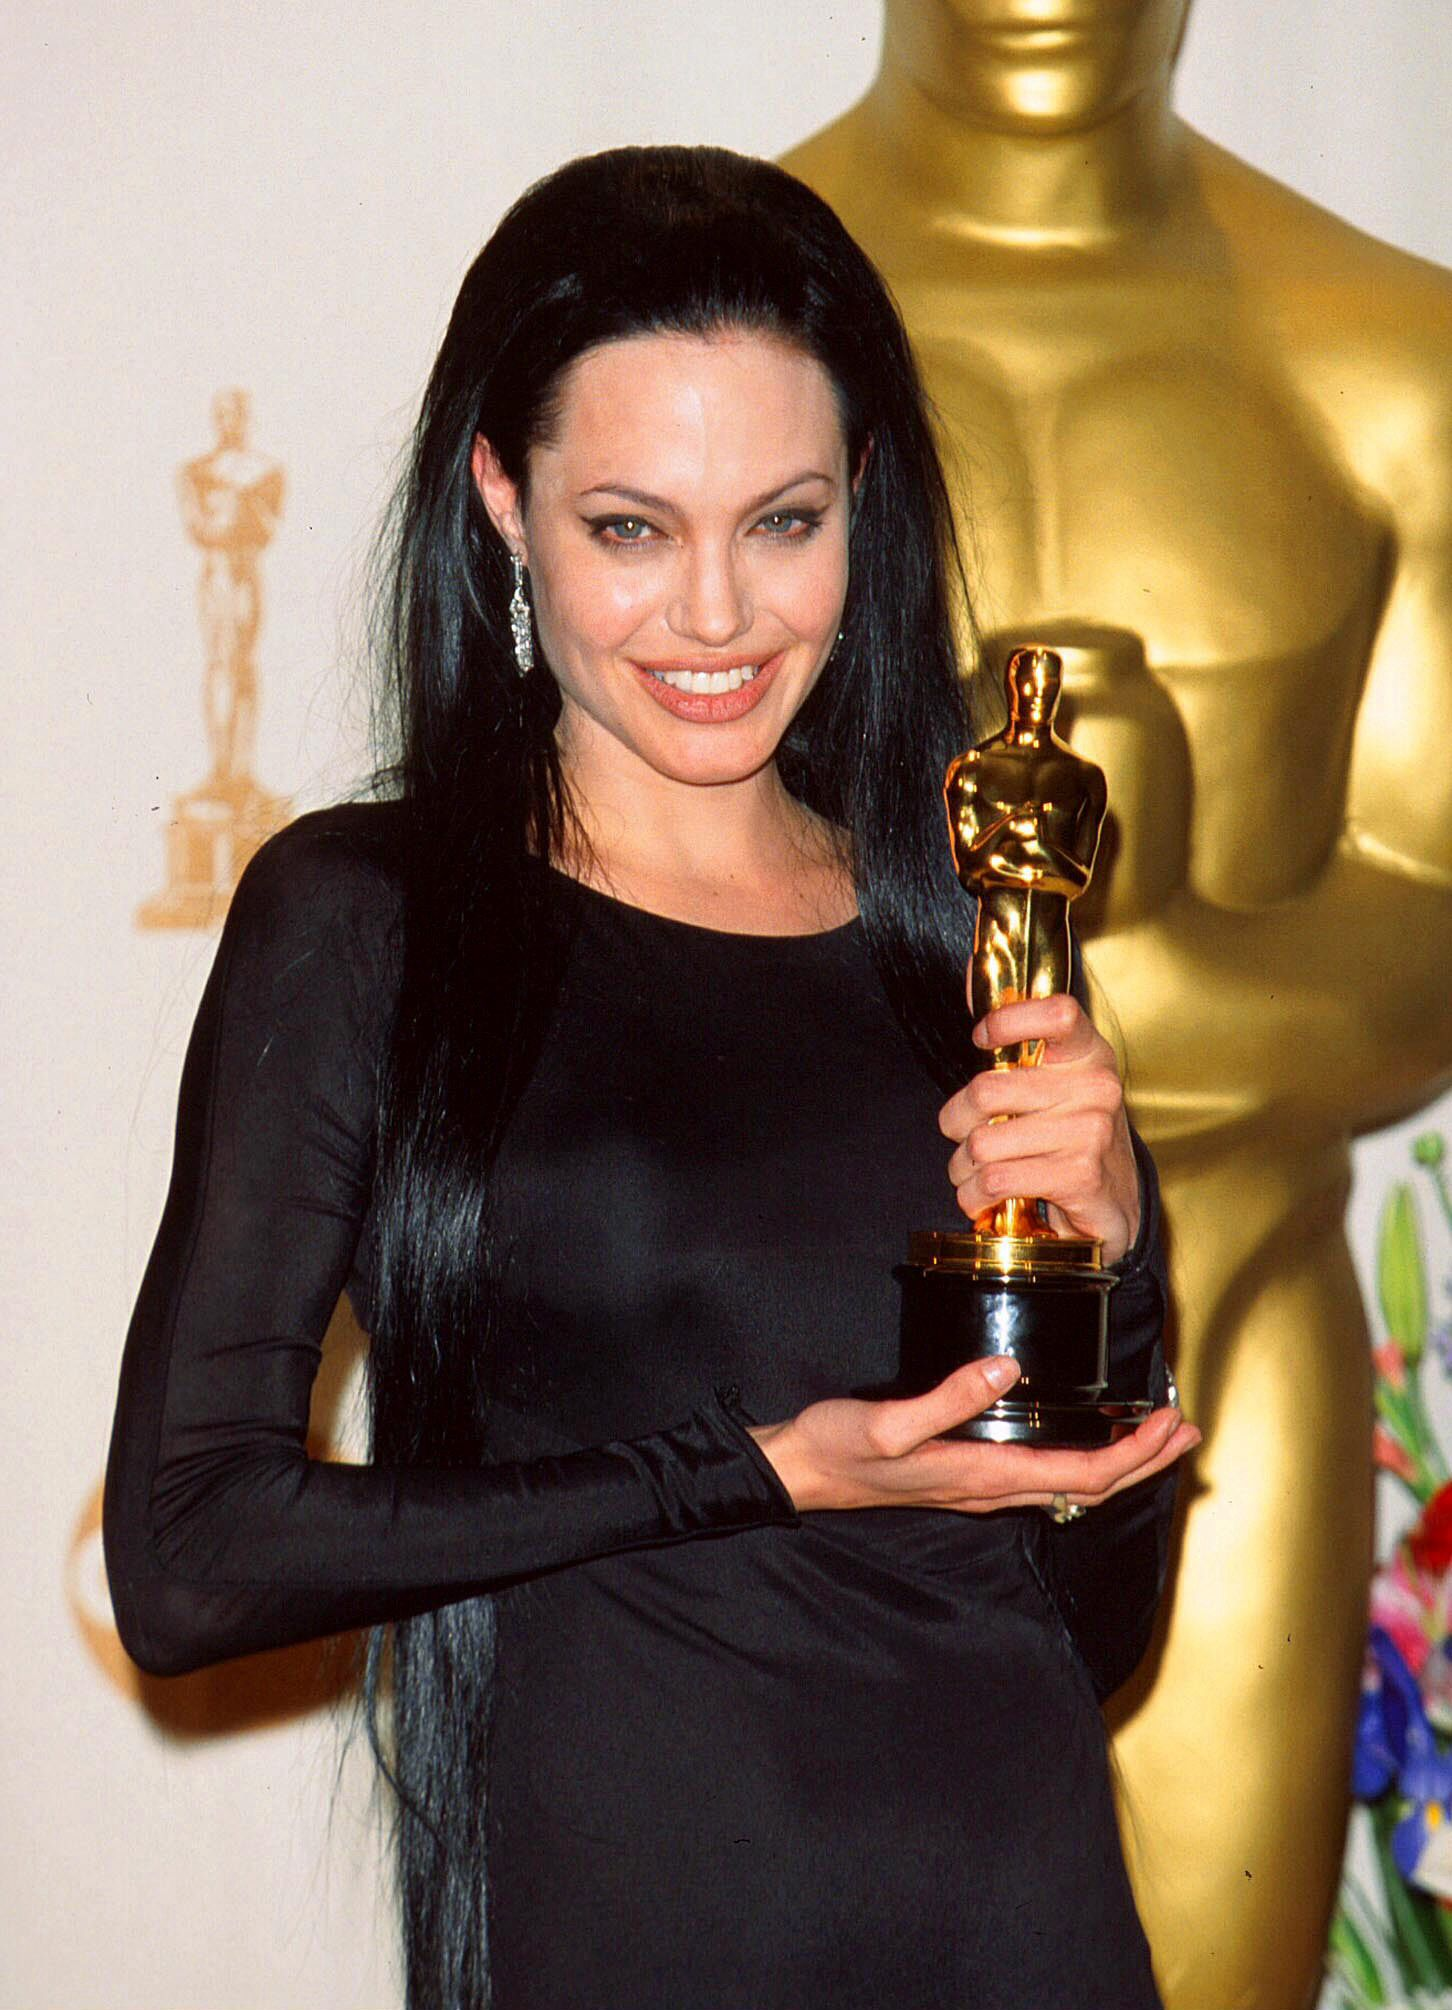 For what film did the Oscar Angelina Jolie get